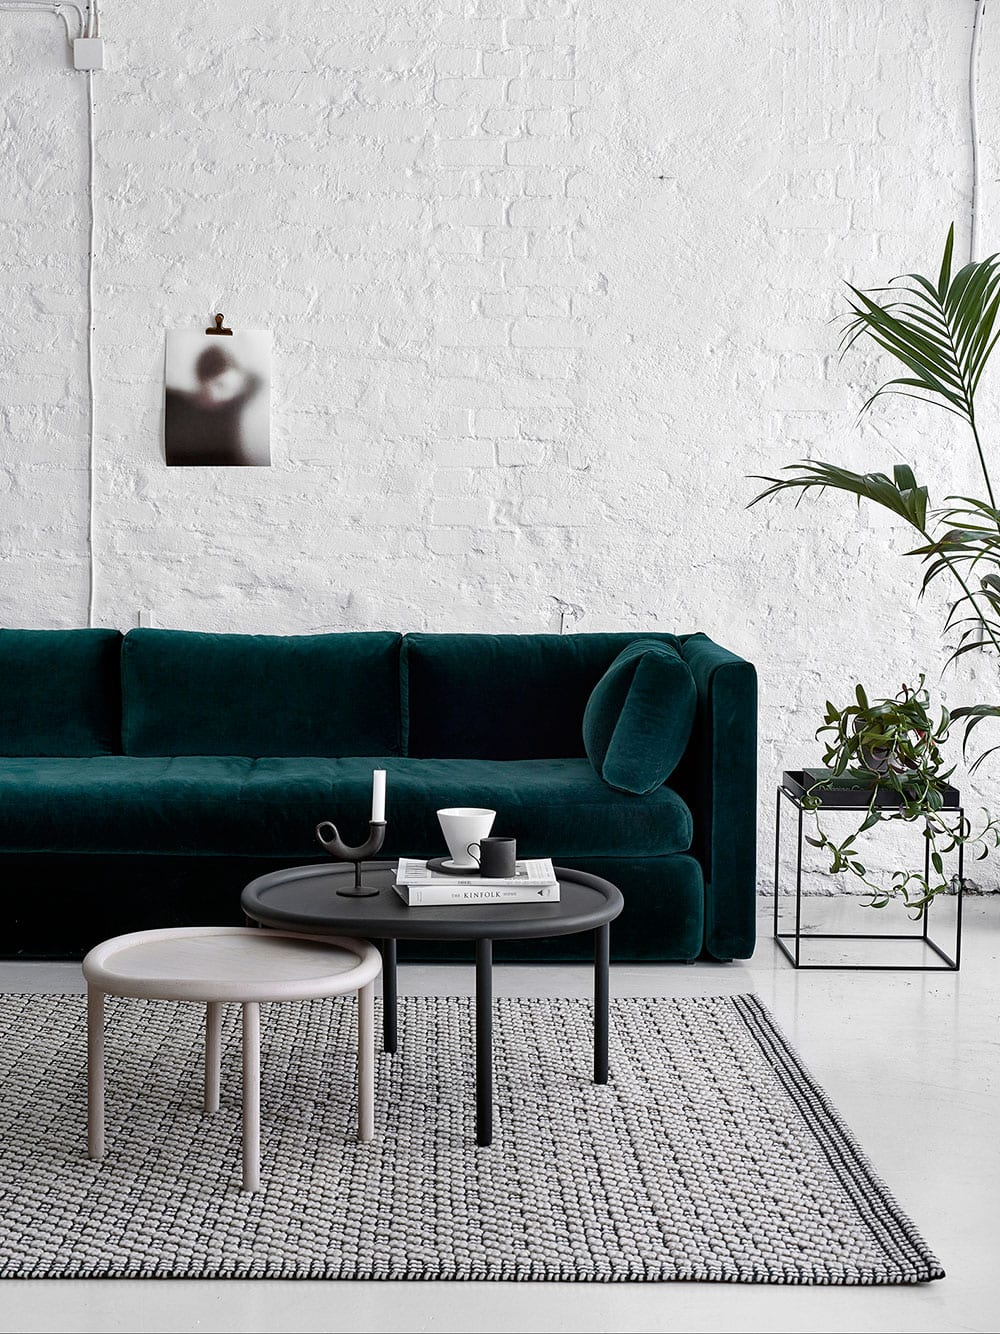 Home Inspiration | Decorating with Velvet